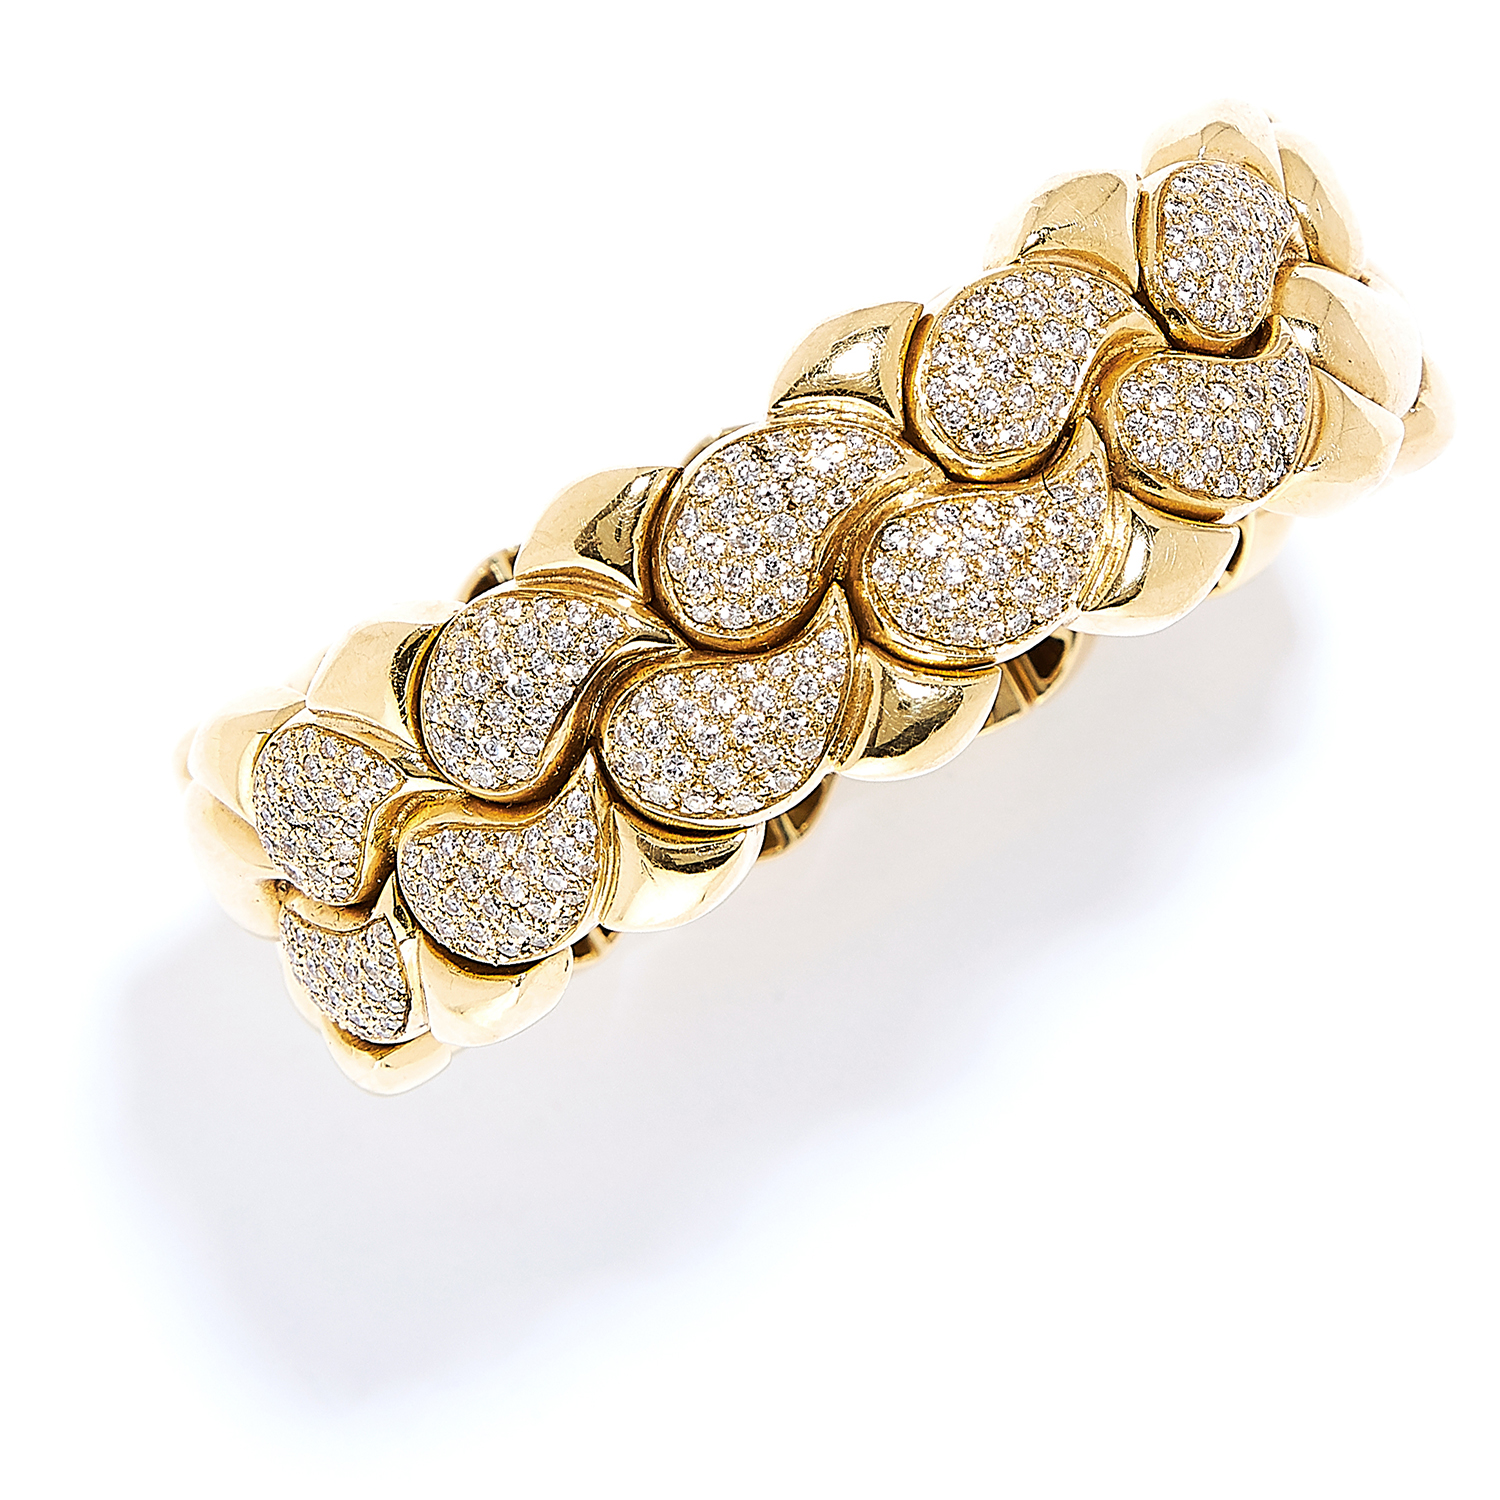 'CASMIR' DIAMOND NECKLACE AND BRACELET SUITE in 18ct yellow gold, in the style of Chopard, each - Bild 3 aus 4